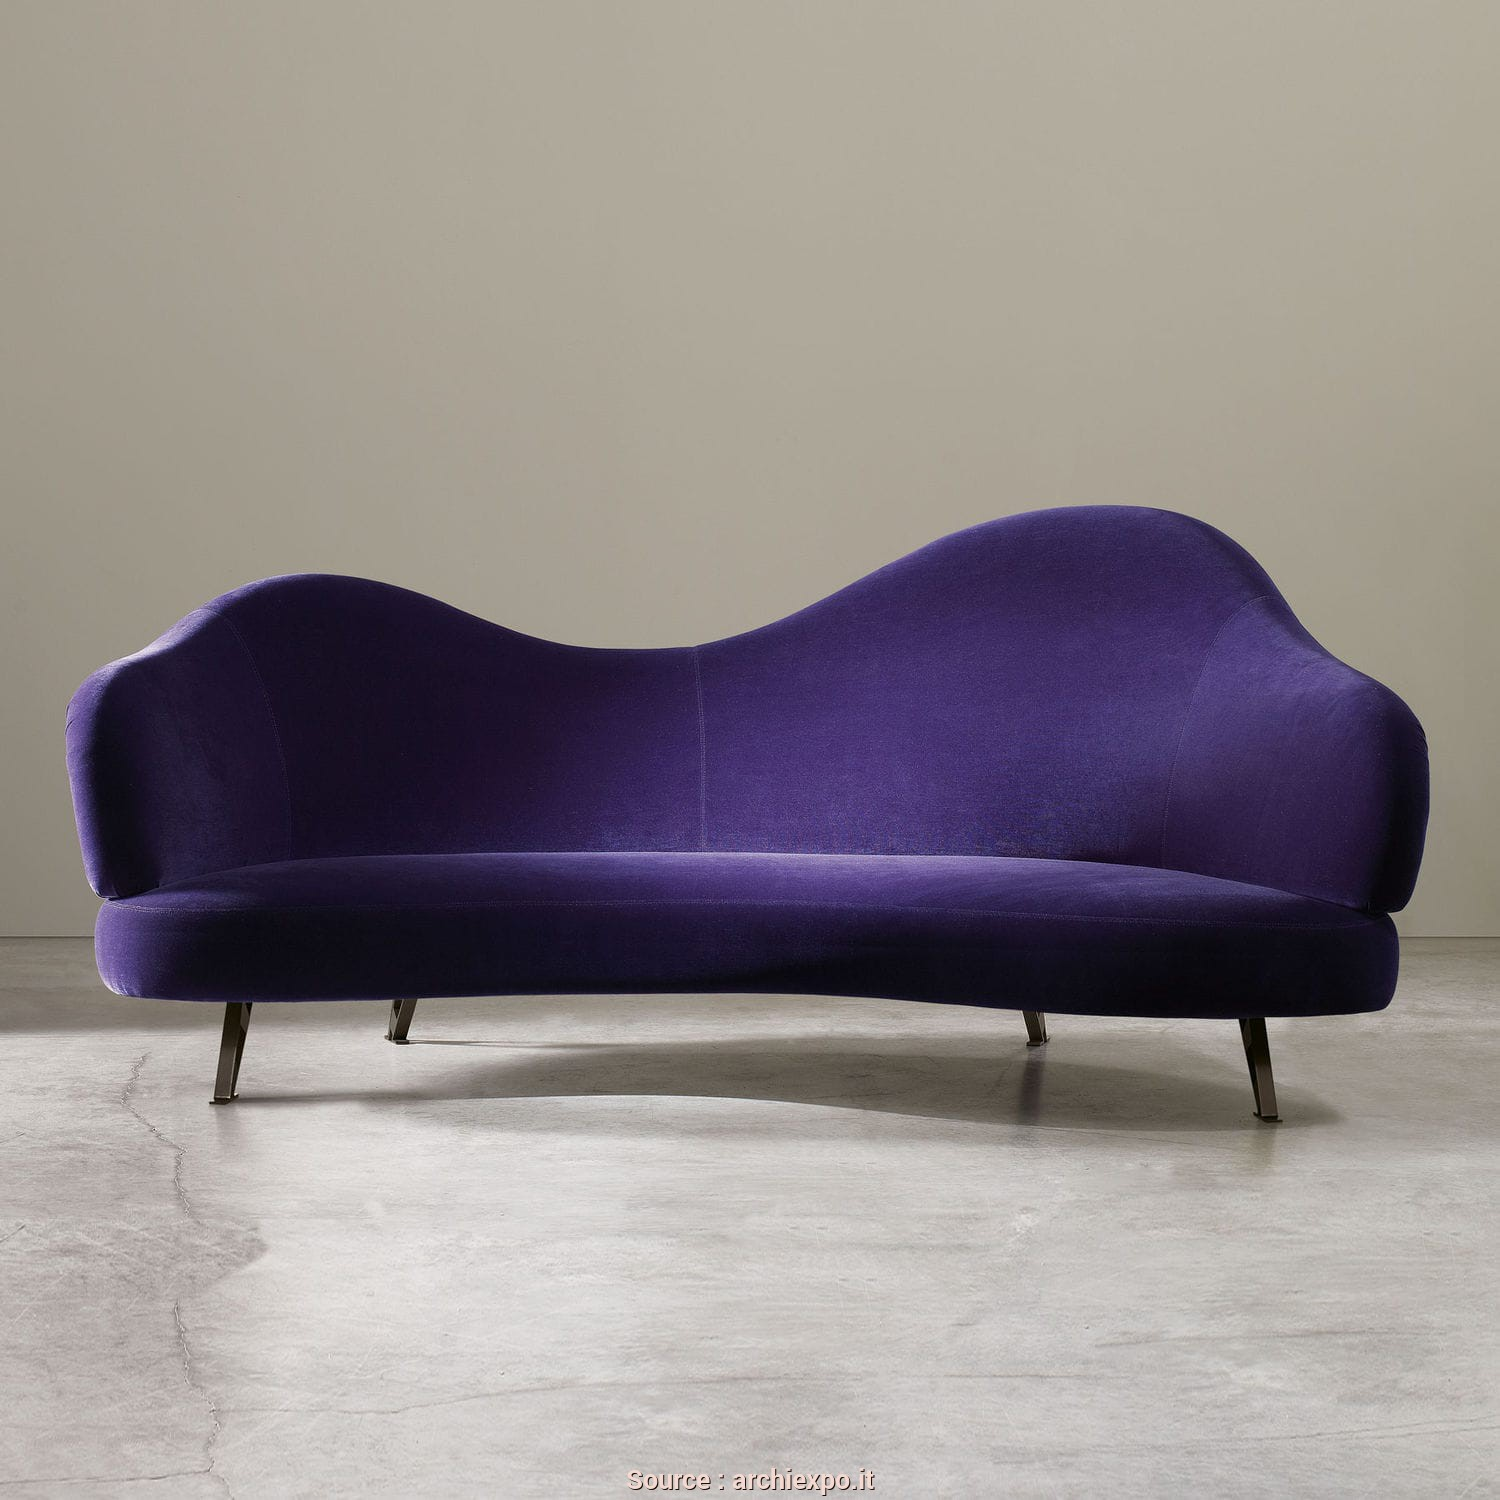 Divano Viola Pelle, Bello Divano Design Originale / In Lino / Viola, CHARMING By Arc_Lab